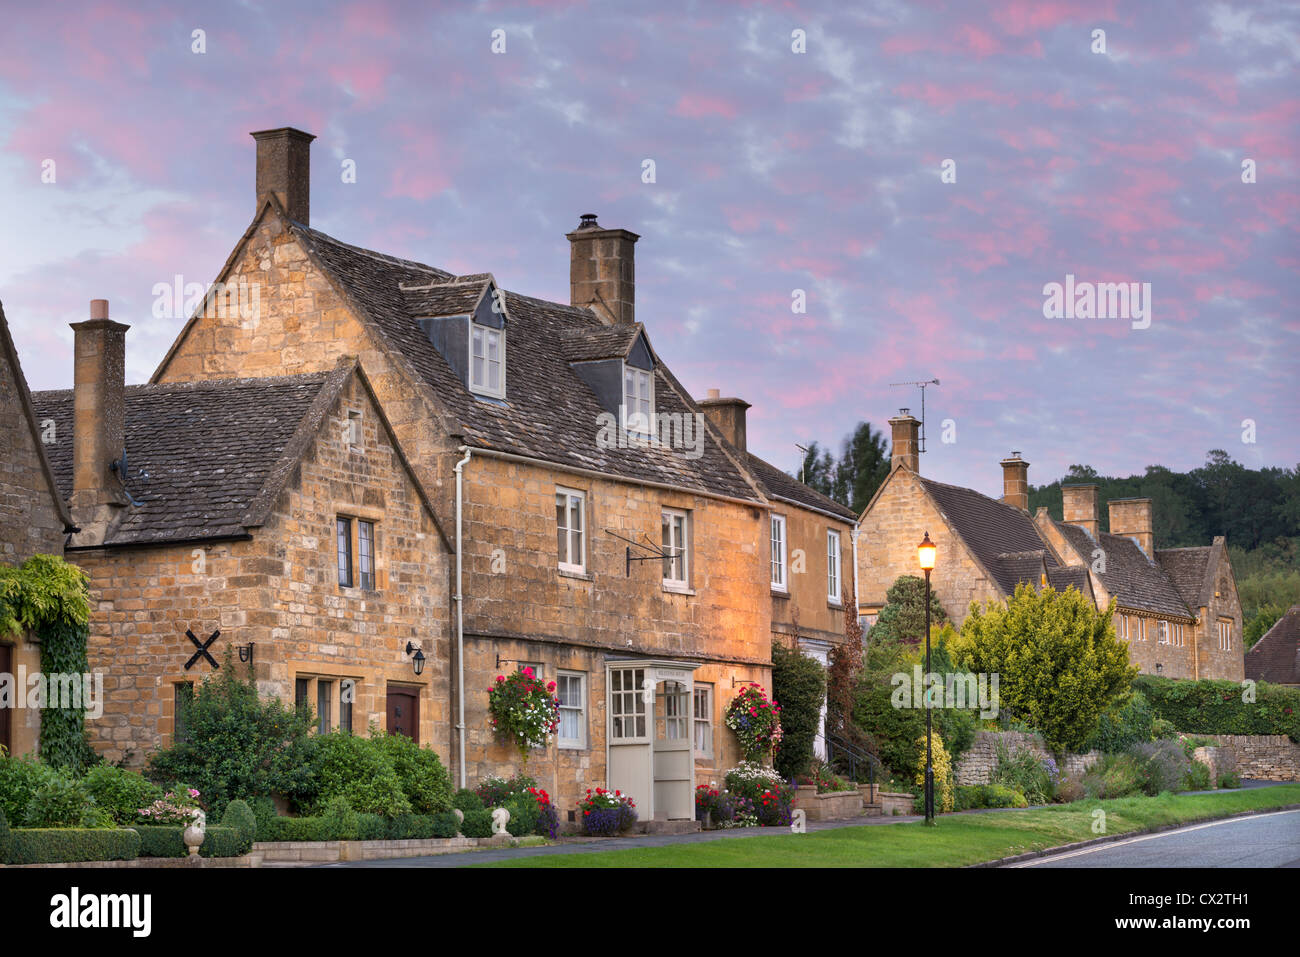 Pretty houses in the picturesque Cotswolds village of Broadway, Worcestershire, England. Autumn (September) 2012. - Stock Image